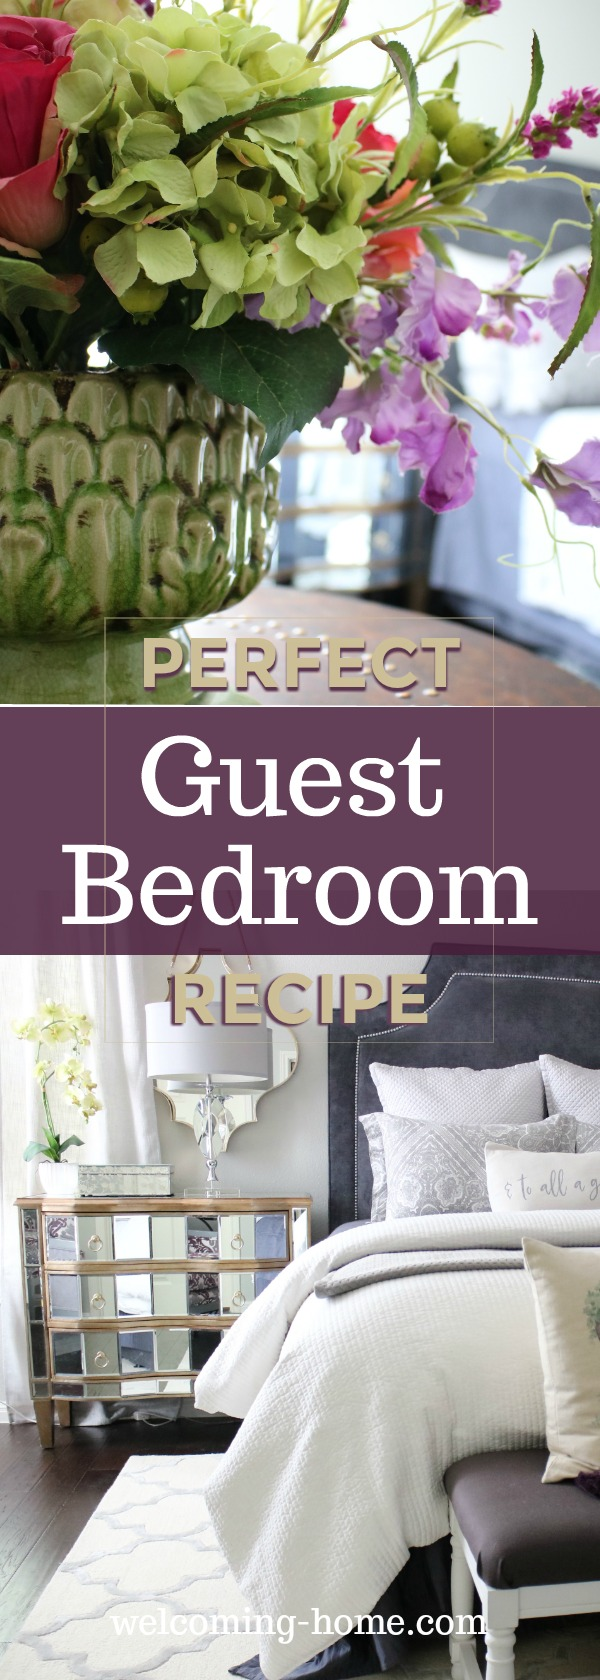 Guest Bedroom Recipe.jpg